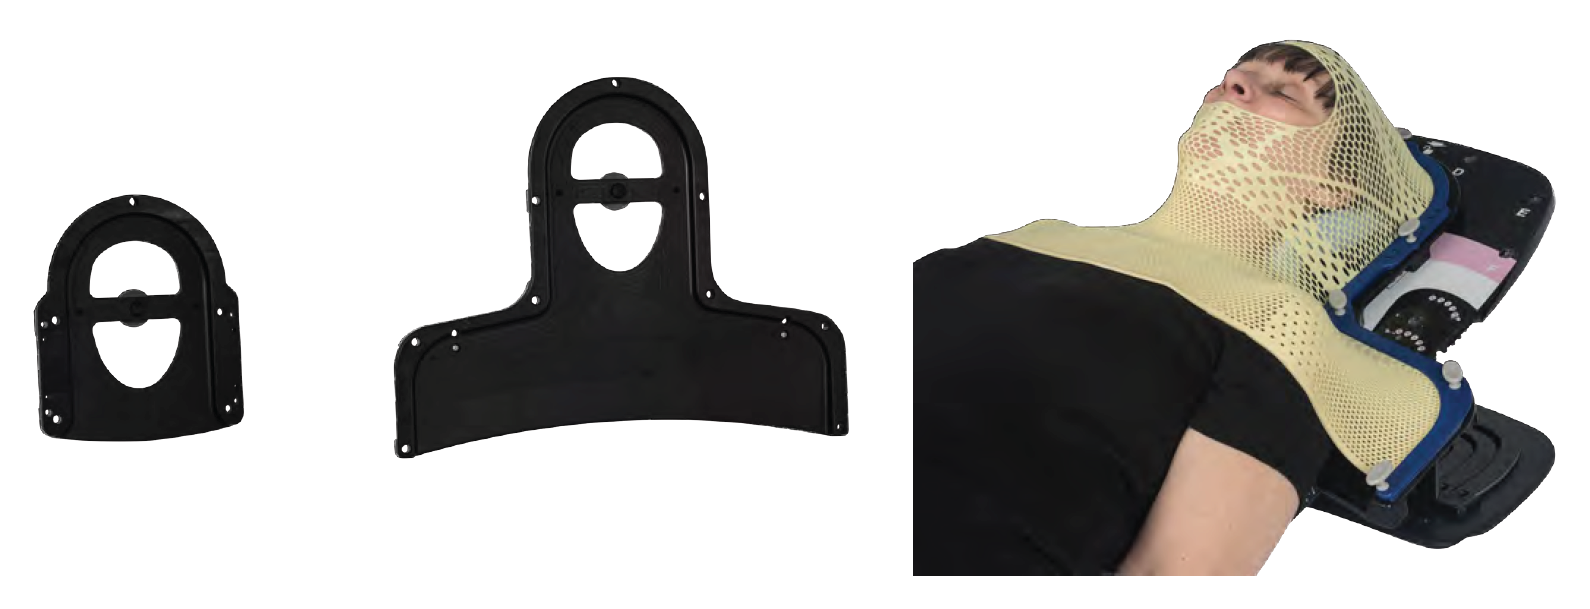 headneck_adapter